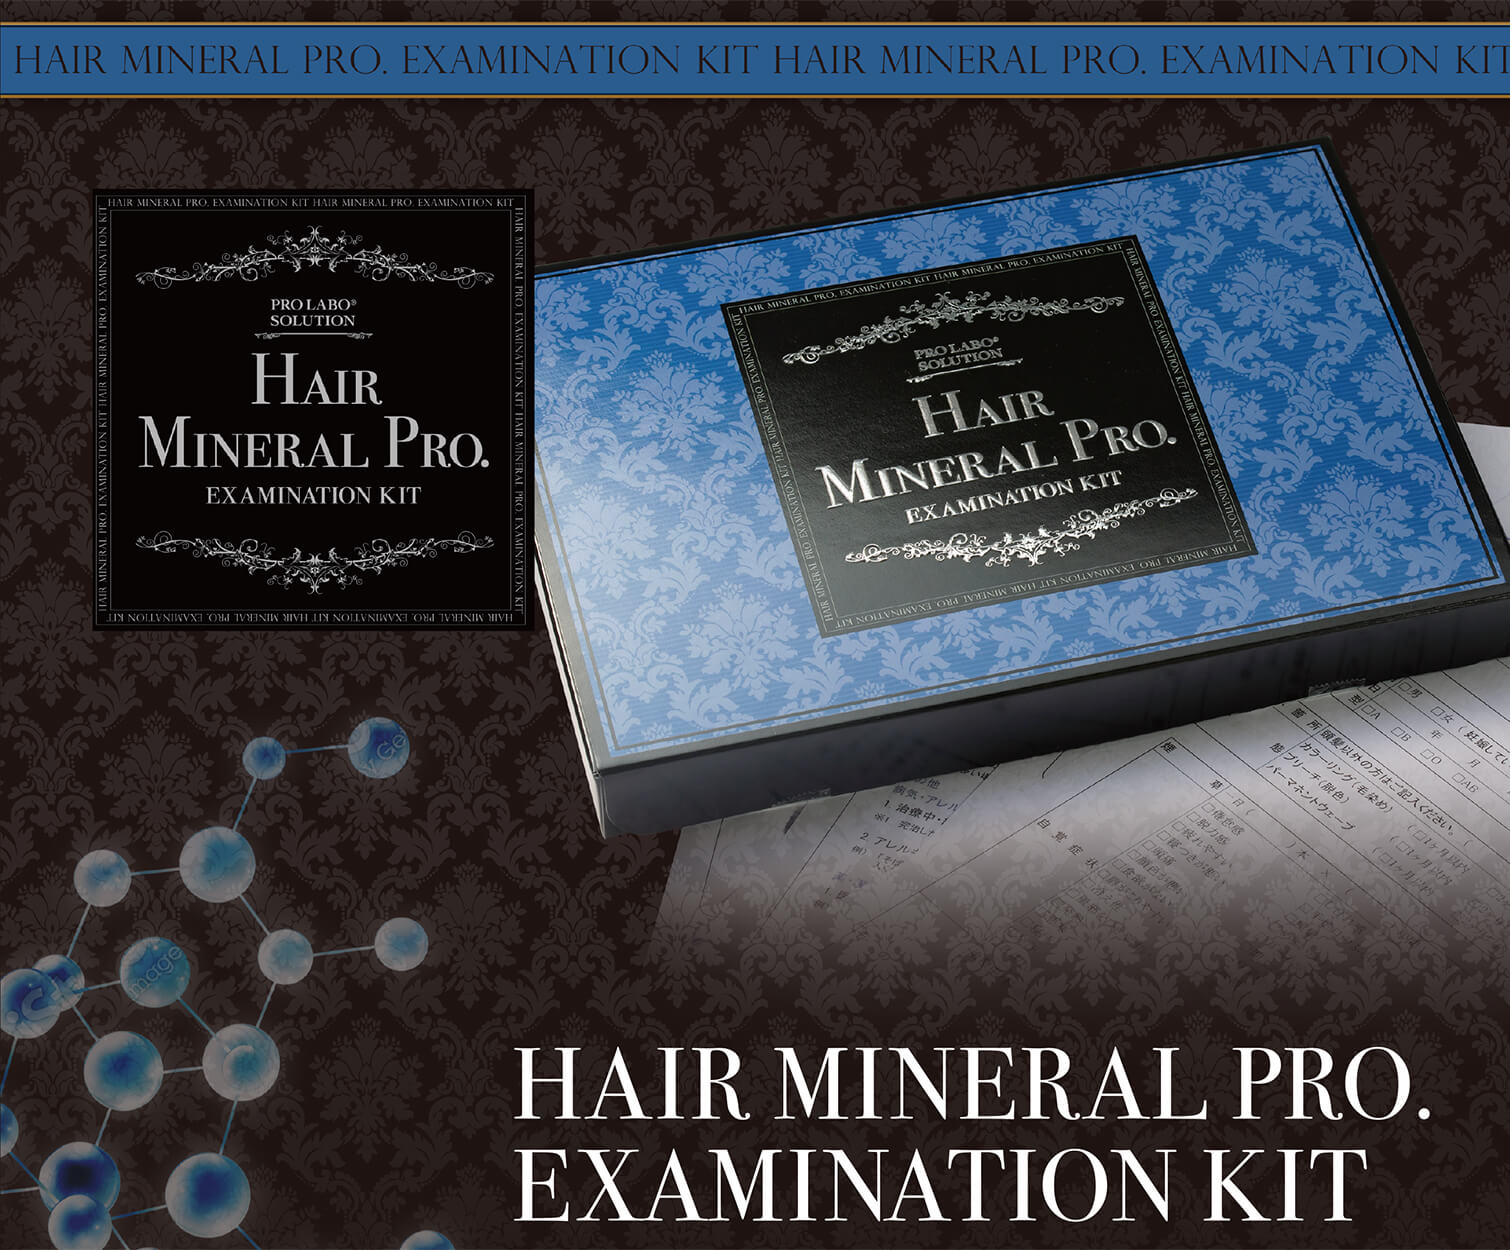 HAIR MINERAL PRO .EXAMINATION KIT